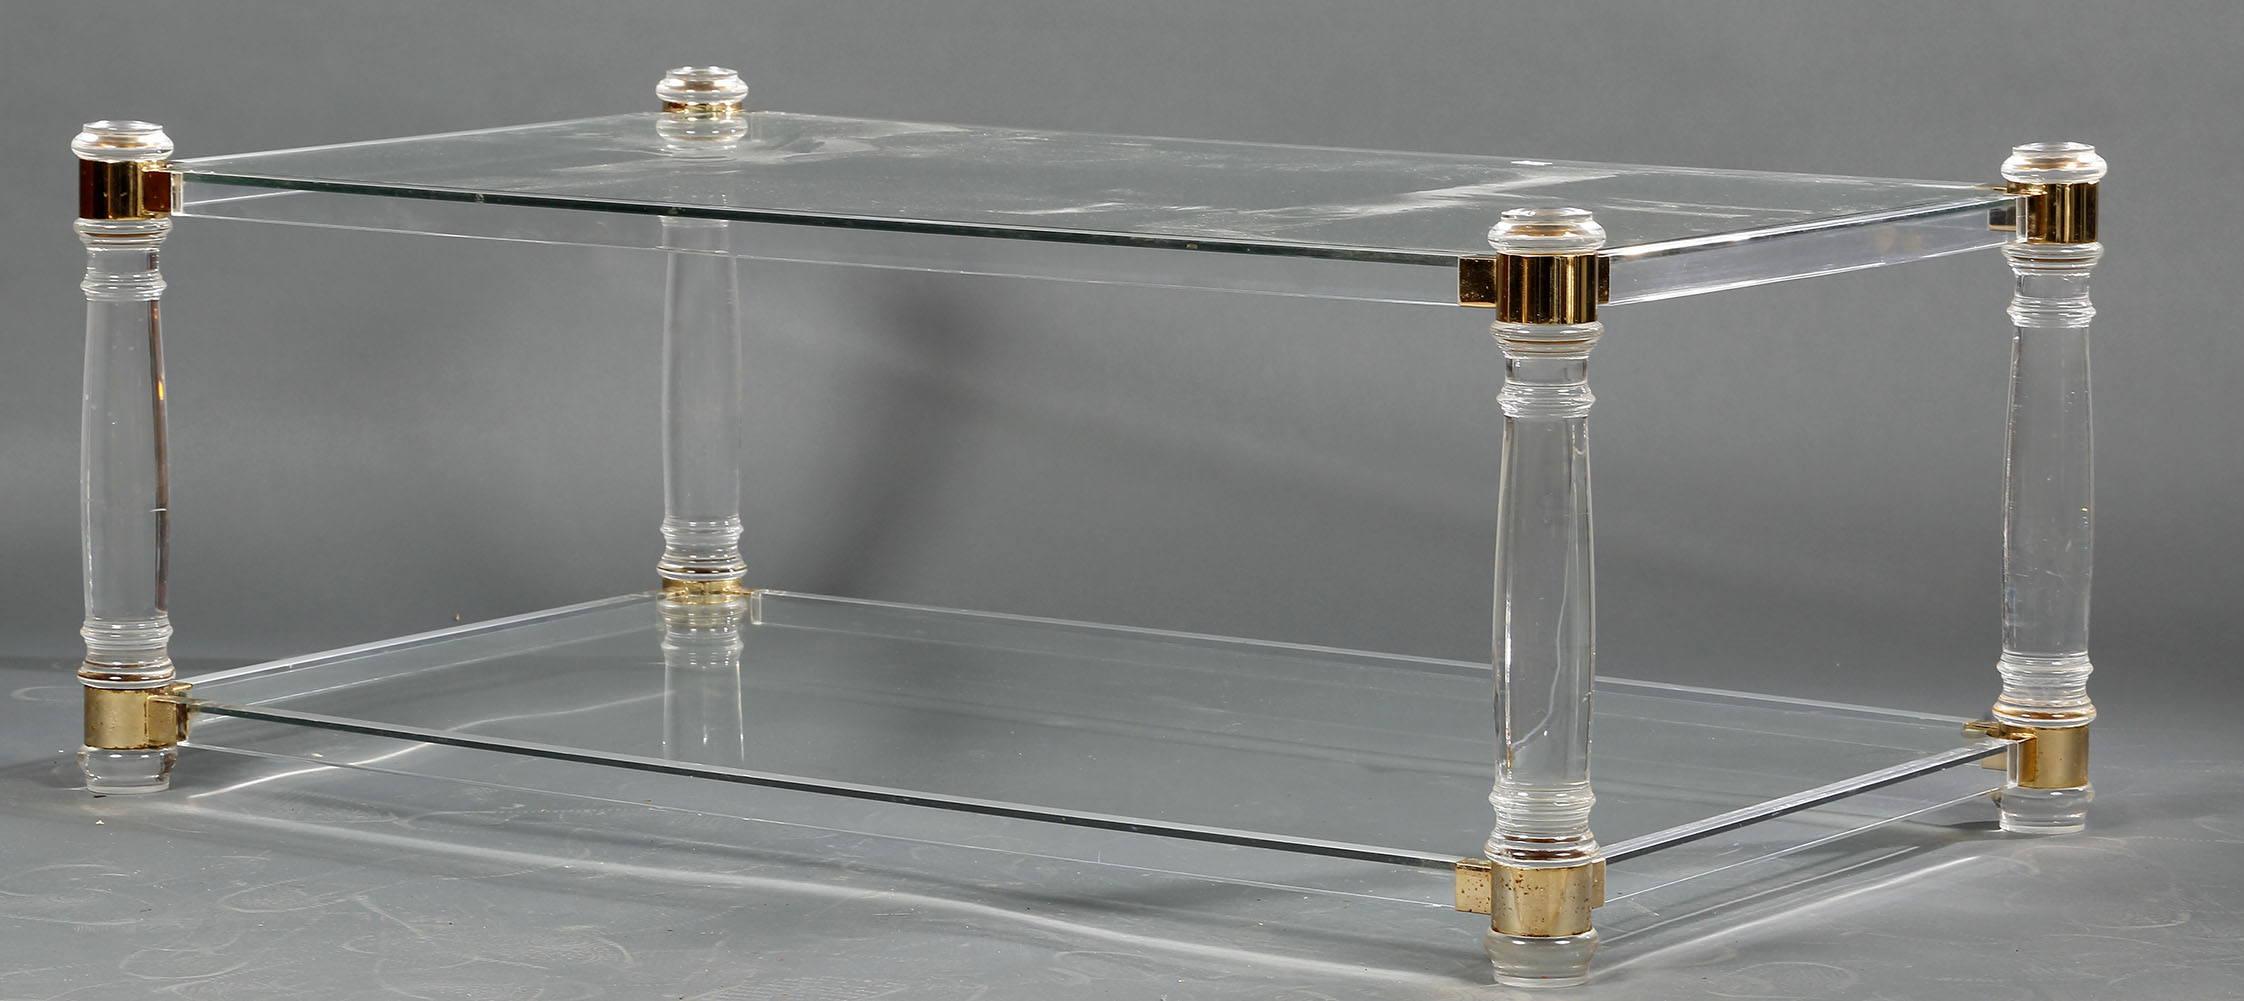 1442389847103452 Unique De Table Basse Plexiglas